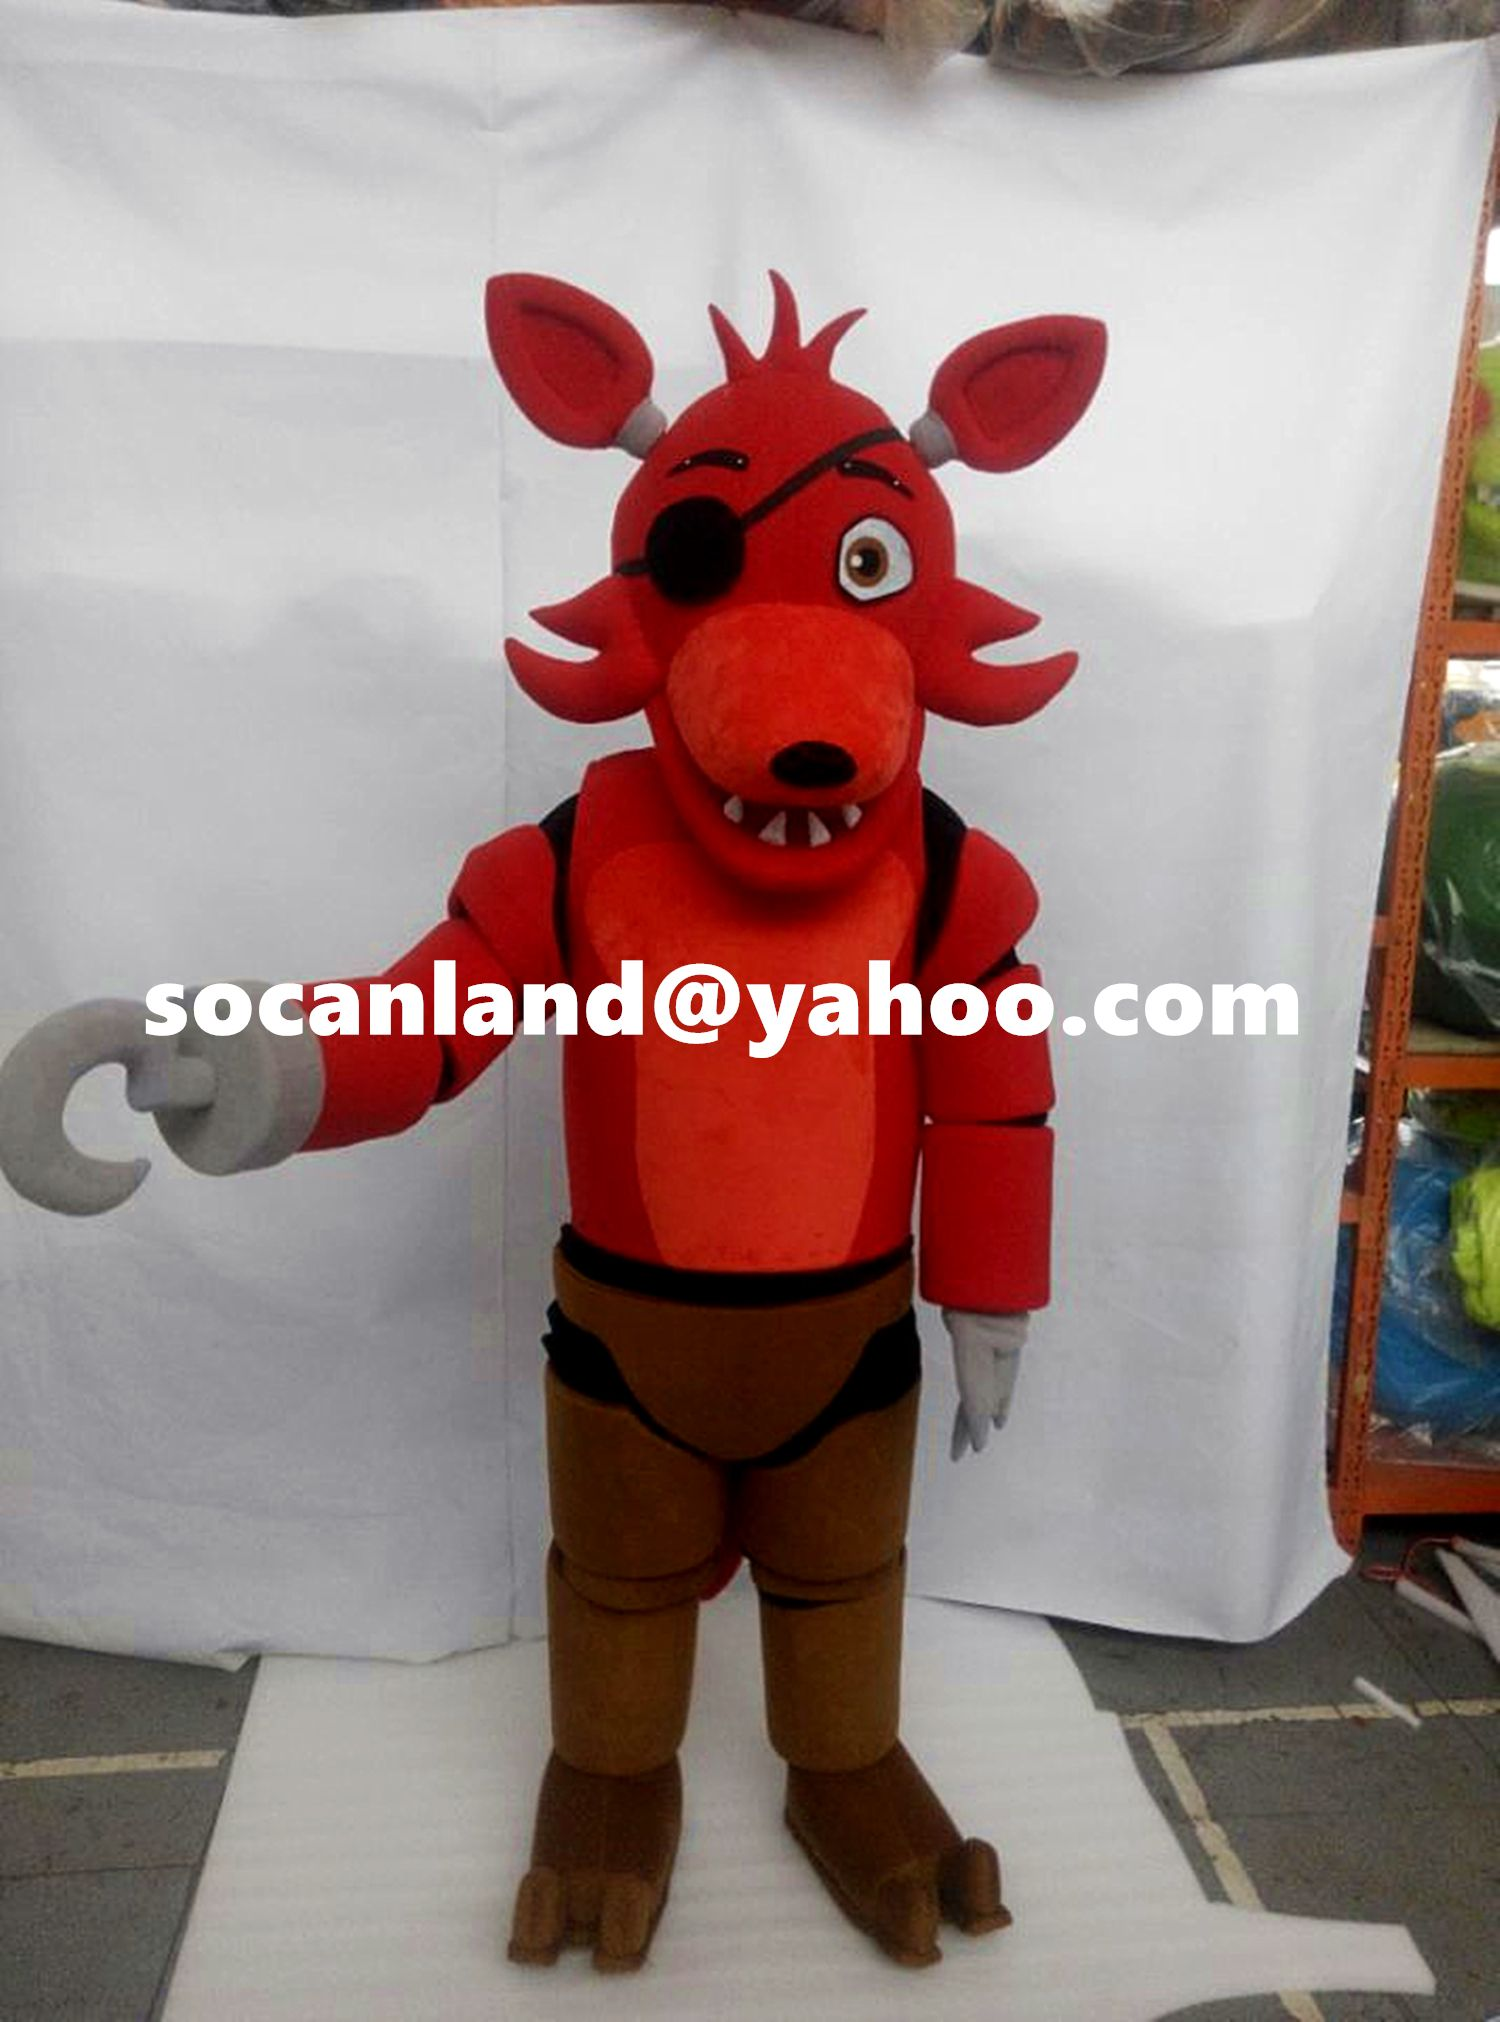 Fnaf bonnie costume for sale - Fnaf Foxy Mascot Costume Fnaf Foxy Cosplay Costumes Fnaf Foxy Adults Costumes Fnaf